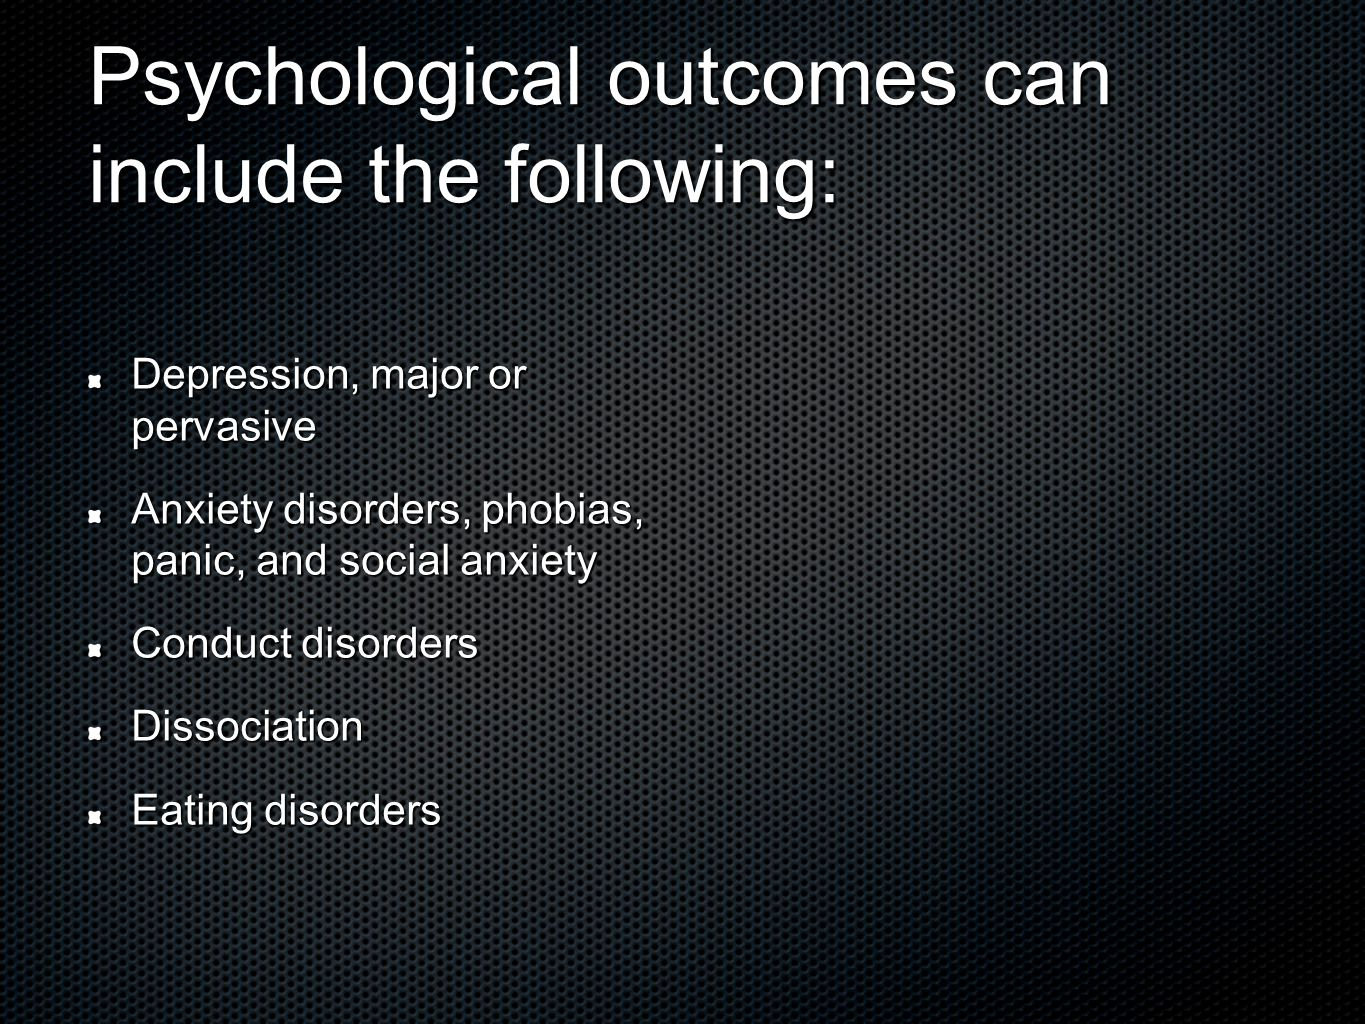 Psychological outcomes can include the following: Depression, major or pervasive Anxiety disorders, phobias, panic, and social anxiety Conduct disorders Dissociation Eating disorders